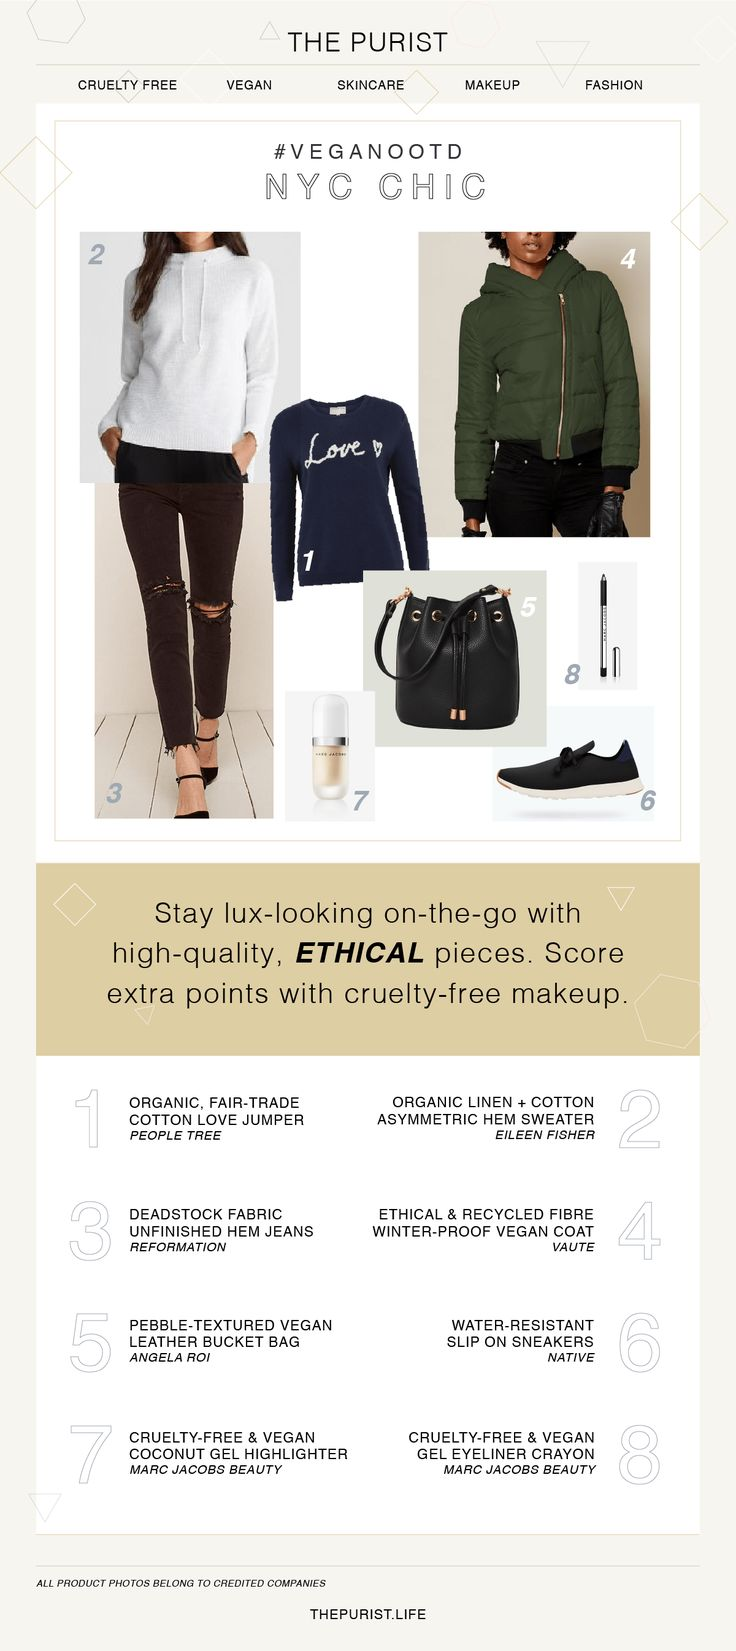 NYC Chic   Vegan Fashion   Vegan Shoes & Bag   Three Vegan Outfits for Winter that are Stylish AF - The Purist Life